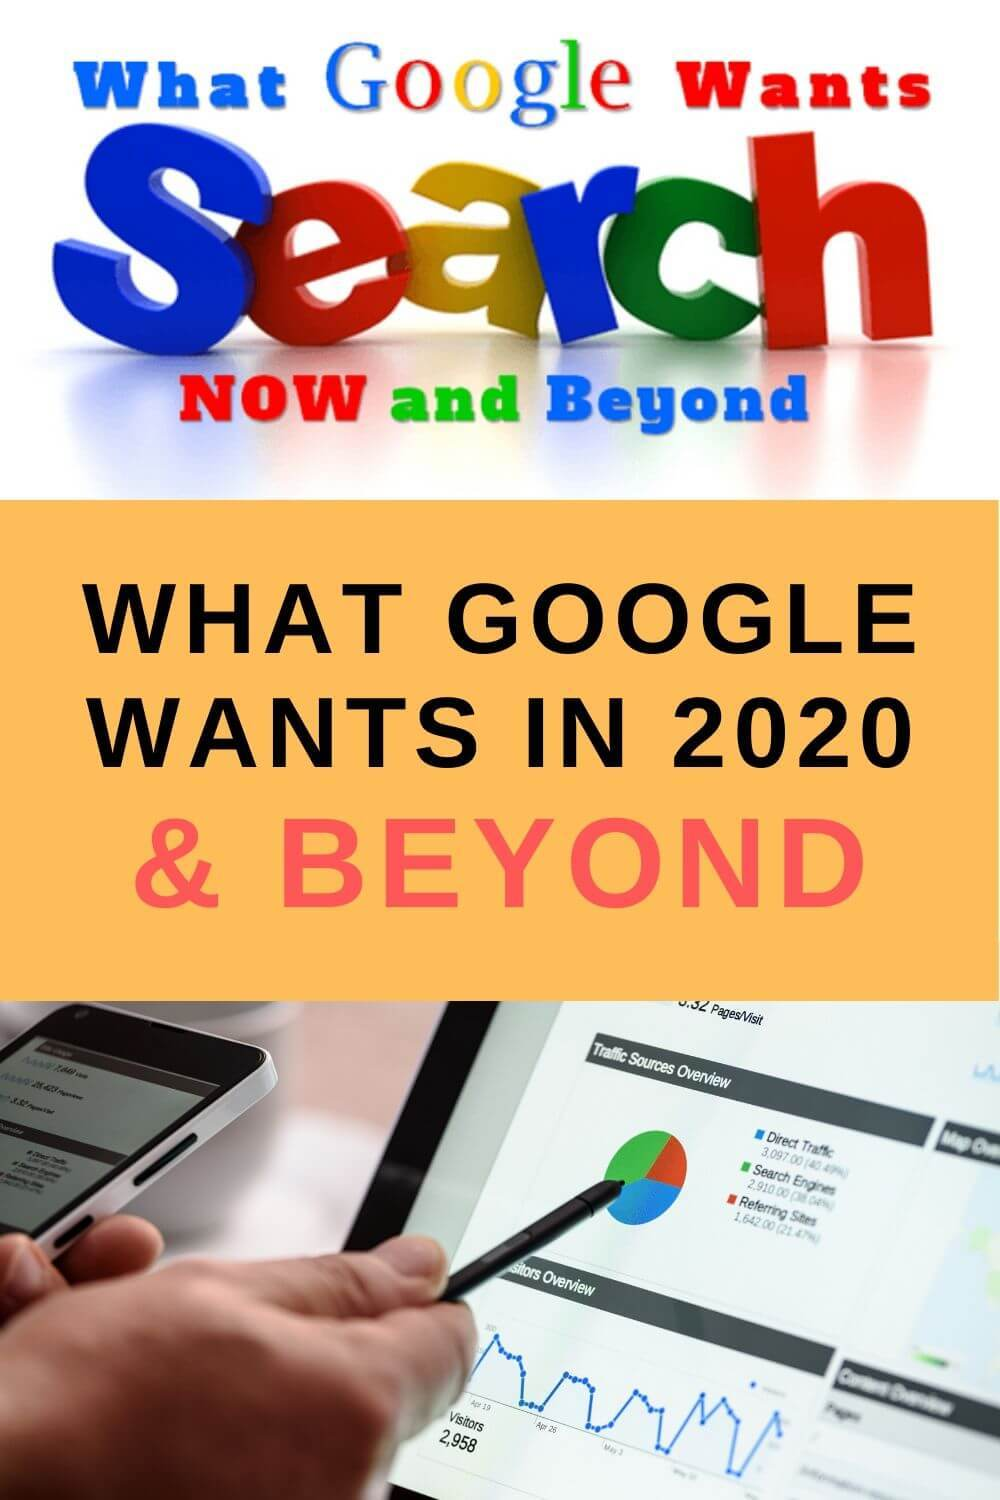 What Google Wants in 2020 and Beyond